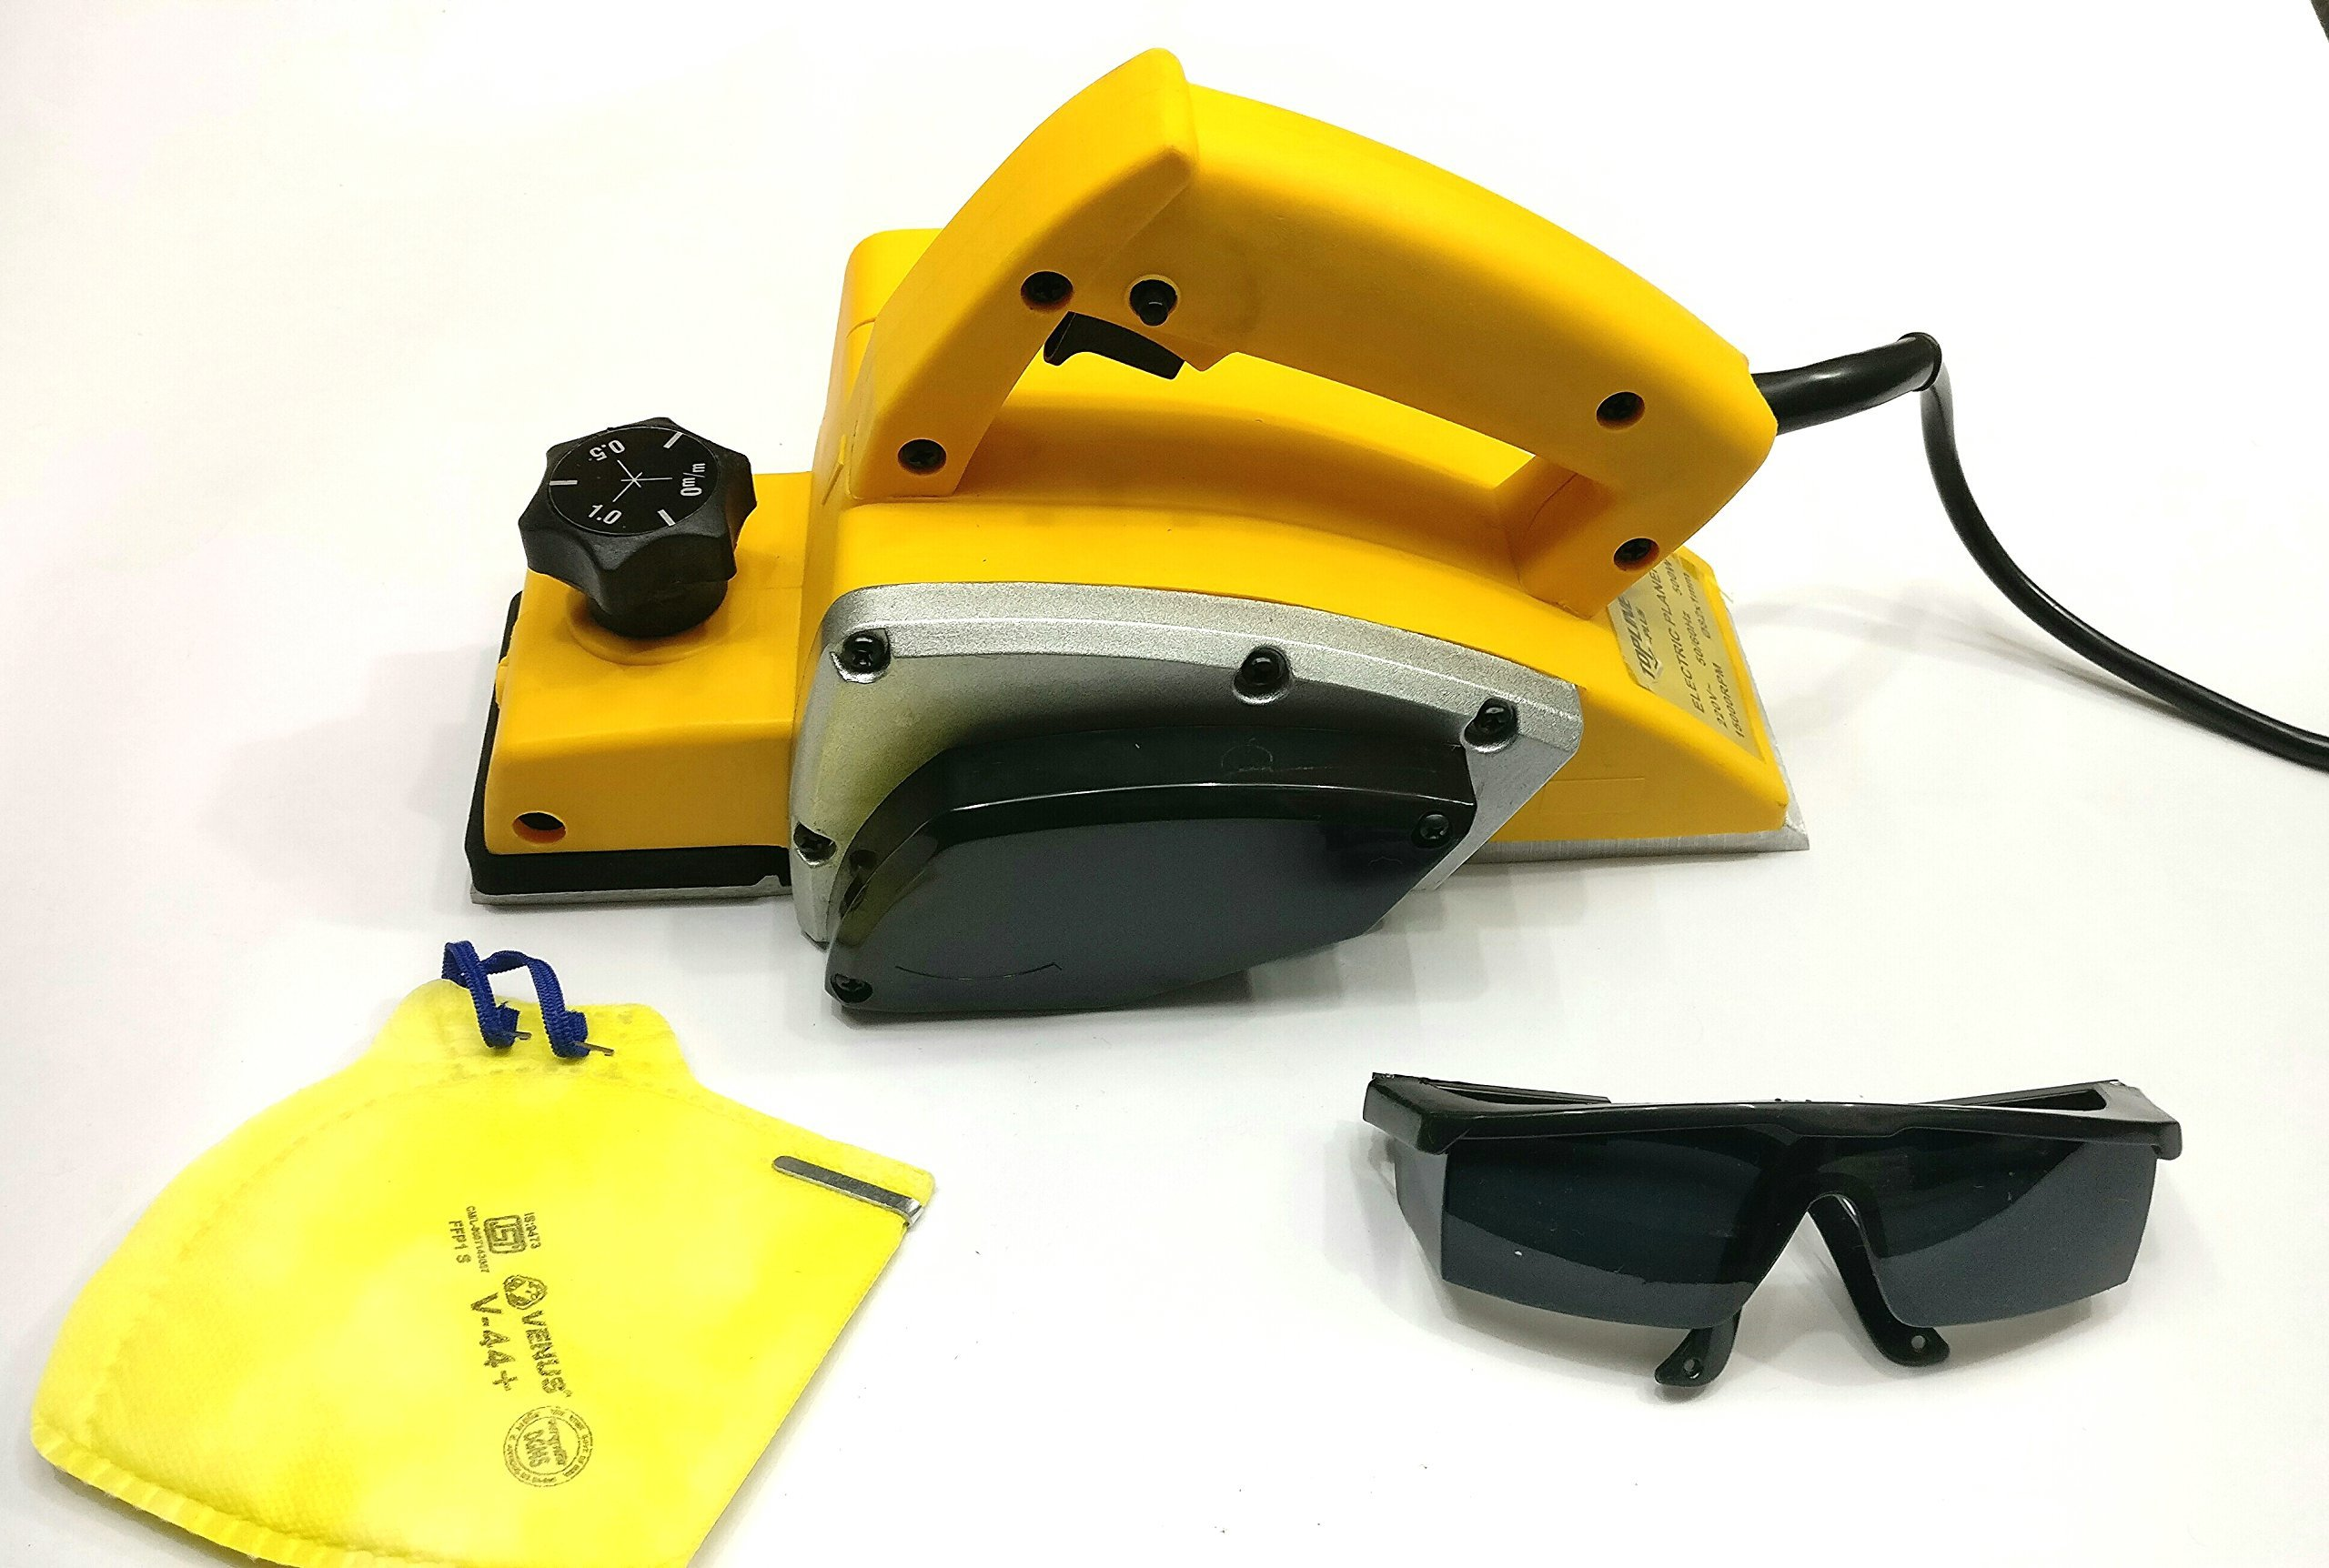 TOOLSCENTRE 'S Powerful Electric Wood Hand Planer With Free Goggles & Safety Mask To Ensure Your Safety.